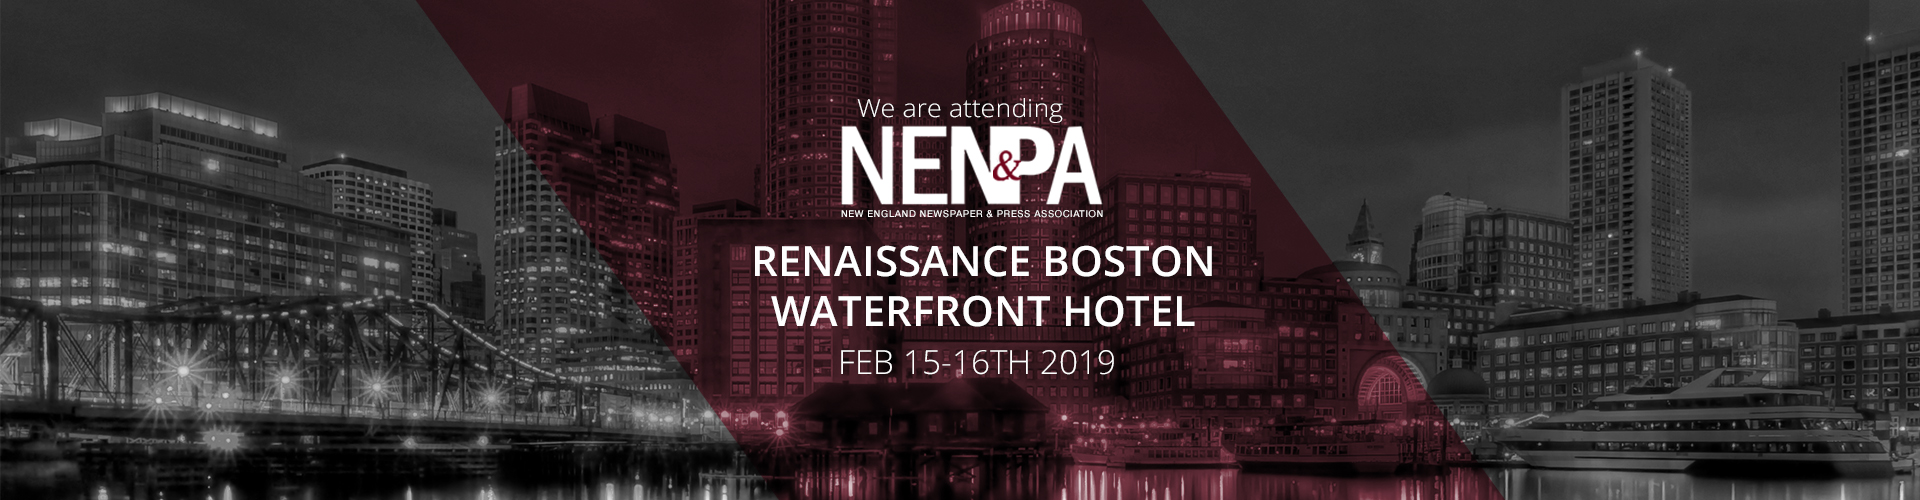 Header image of New England Newspaper Convention (NENPA)